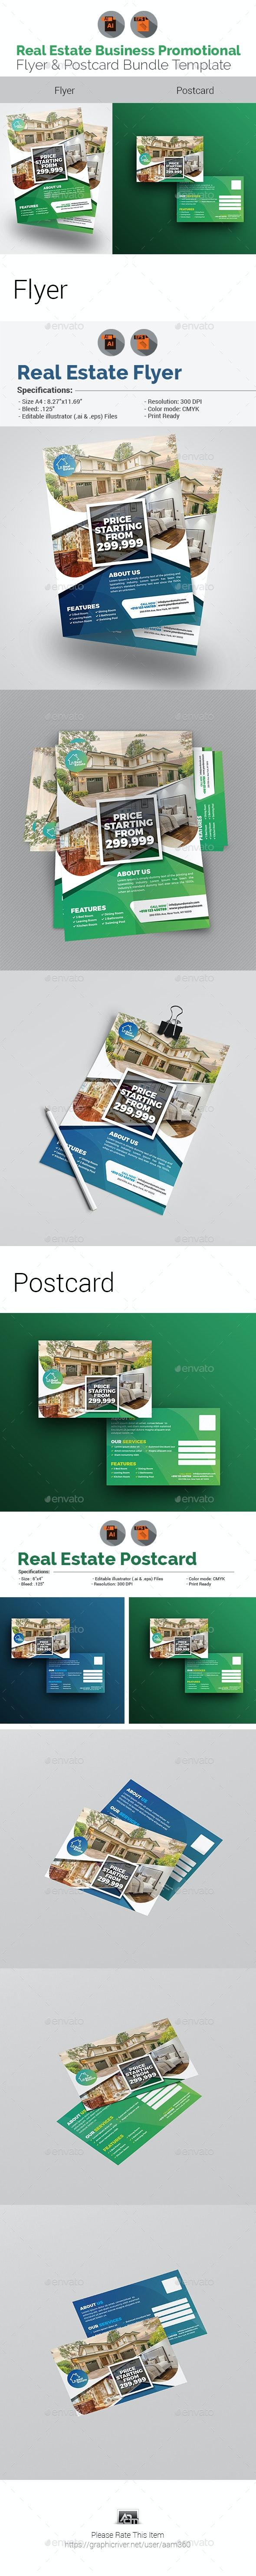 Real Estate Flyer with Postcard Template Bundle - Corporate Flyers